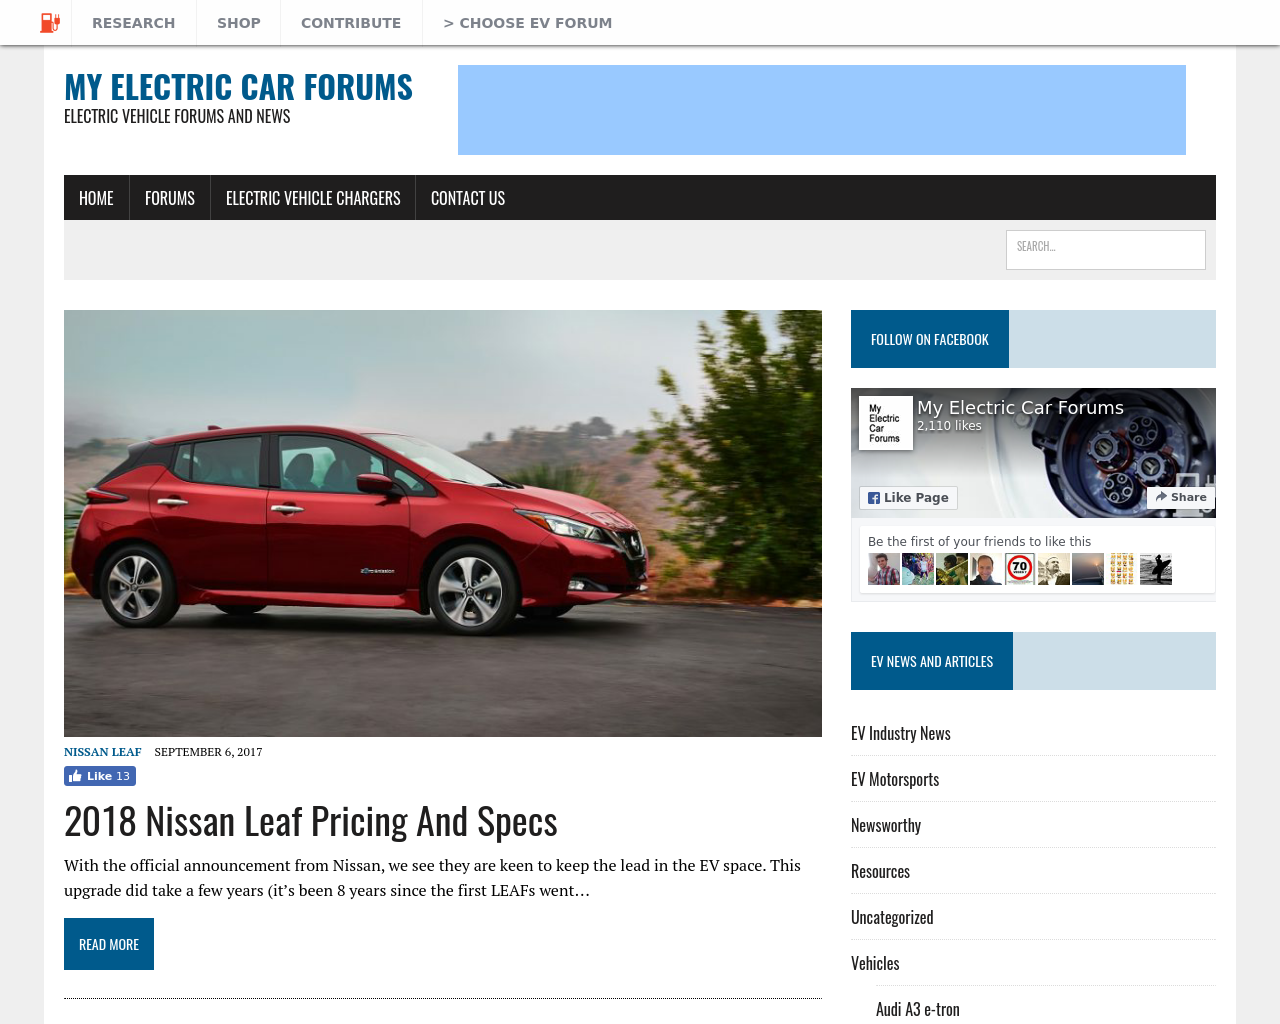 My-Electric-Car-Forum-Advertising-Reviews-Pricing